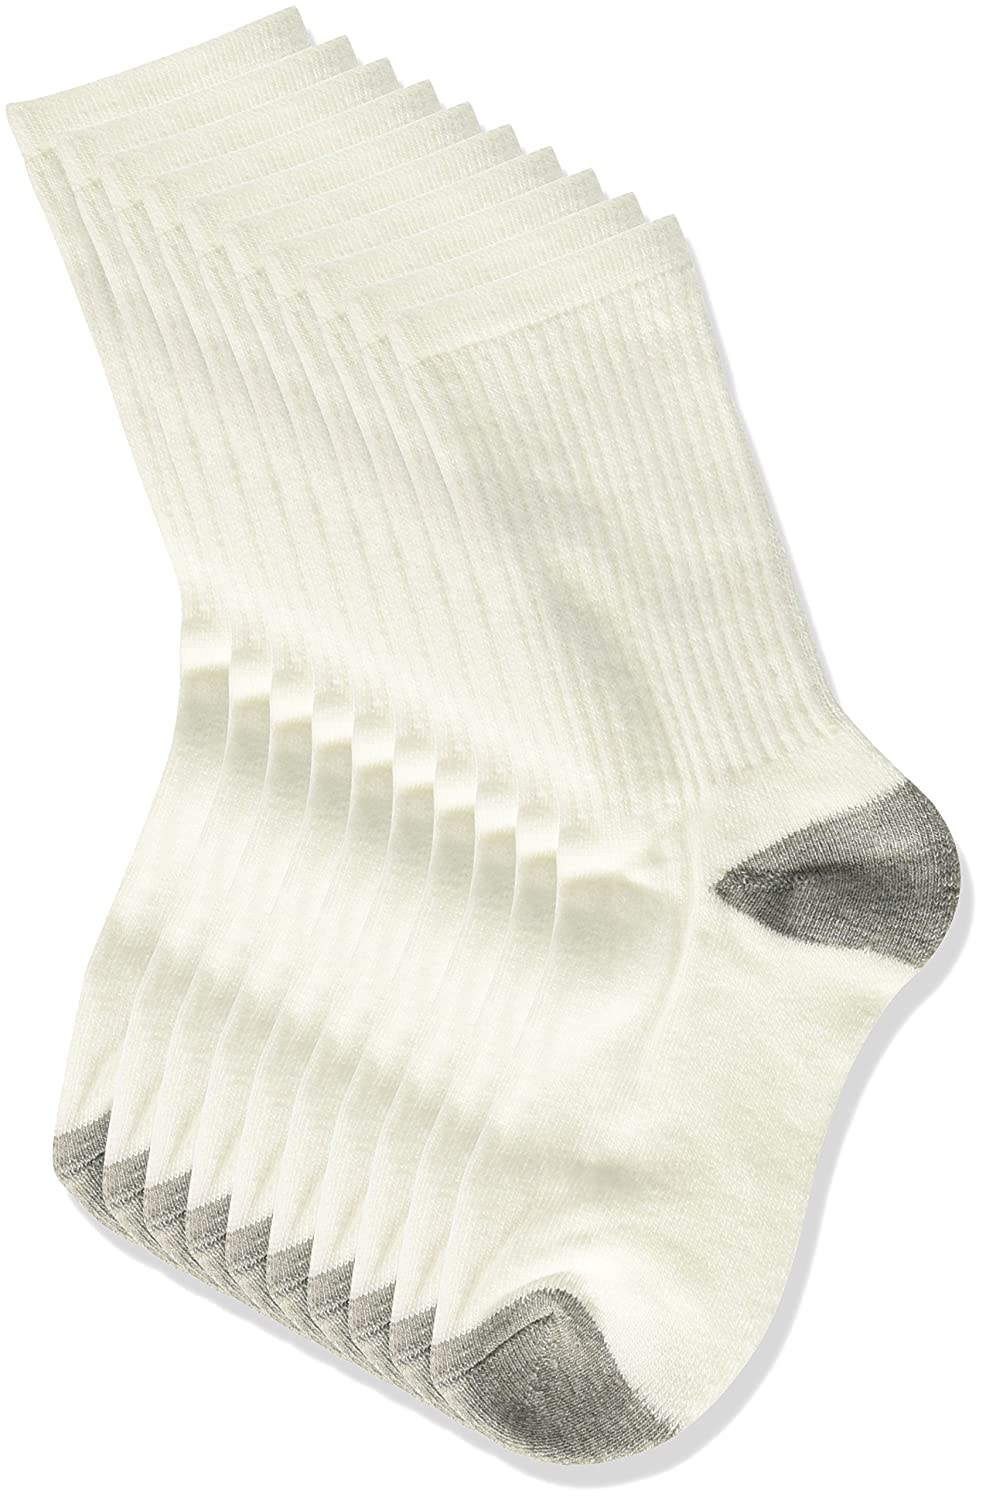 The Childrens Place Baby Socks White Pack Of 3